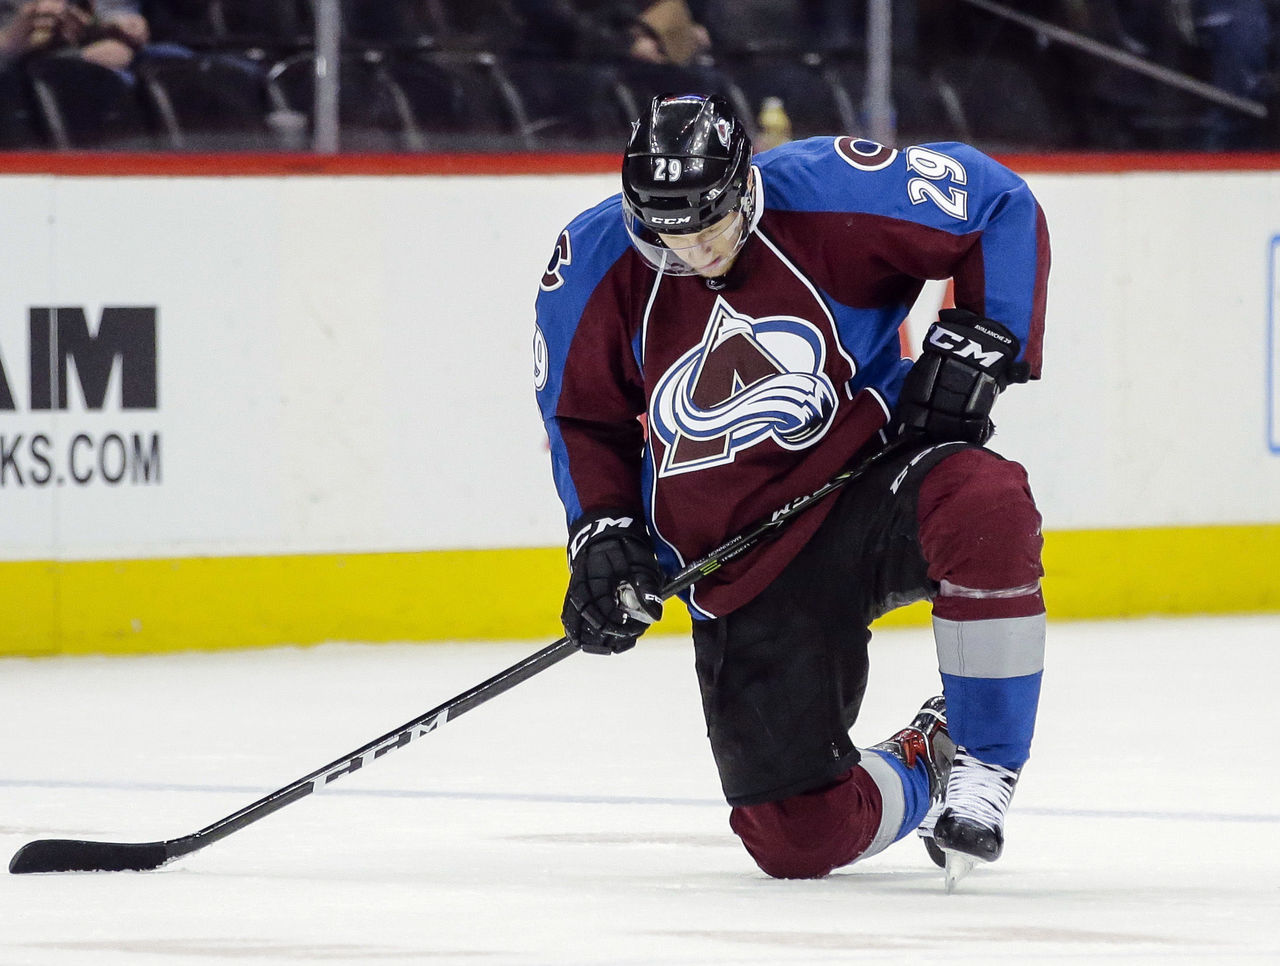 Cropped 2017 04 07t060510z 94829151 nocid rtrmadp 3 nhl minnesota wild at colorado avalanche